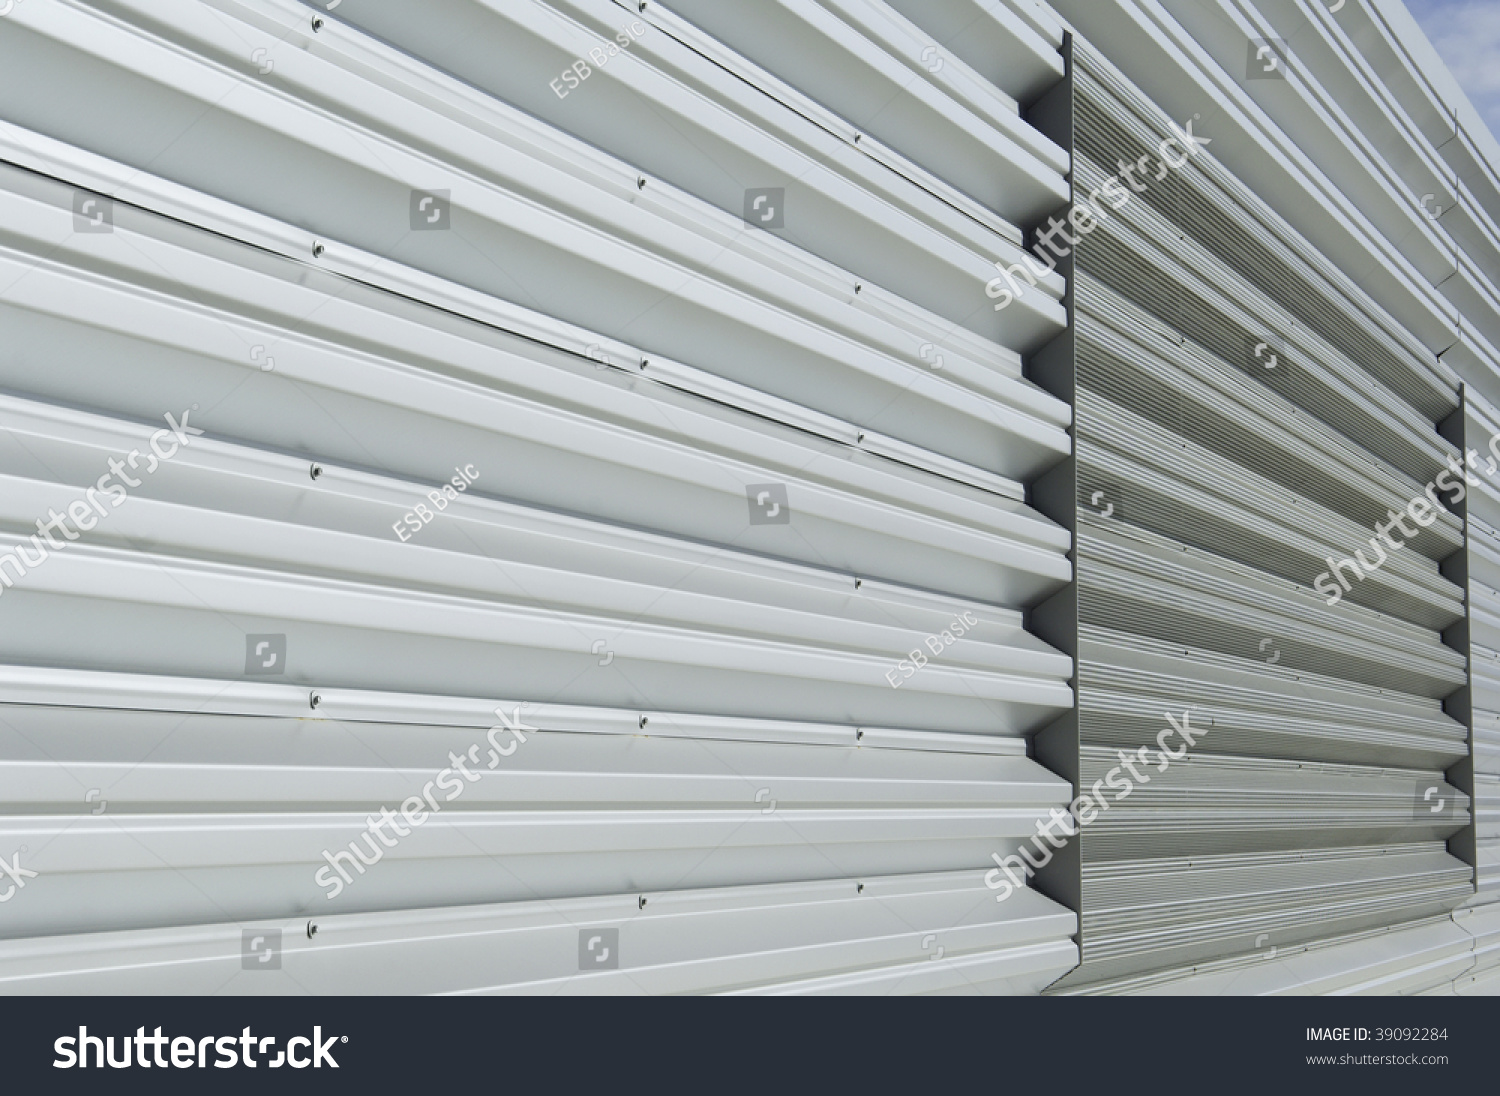 Metal siding on building on college campus stock photo for Horizontal metal siding